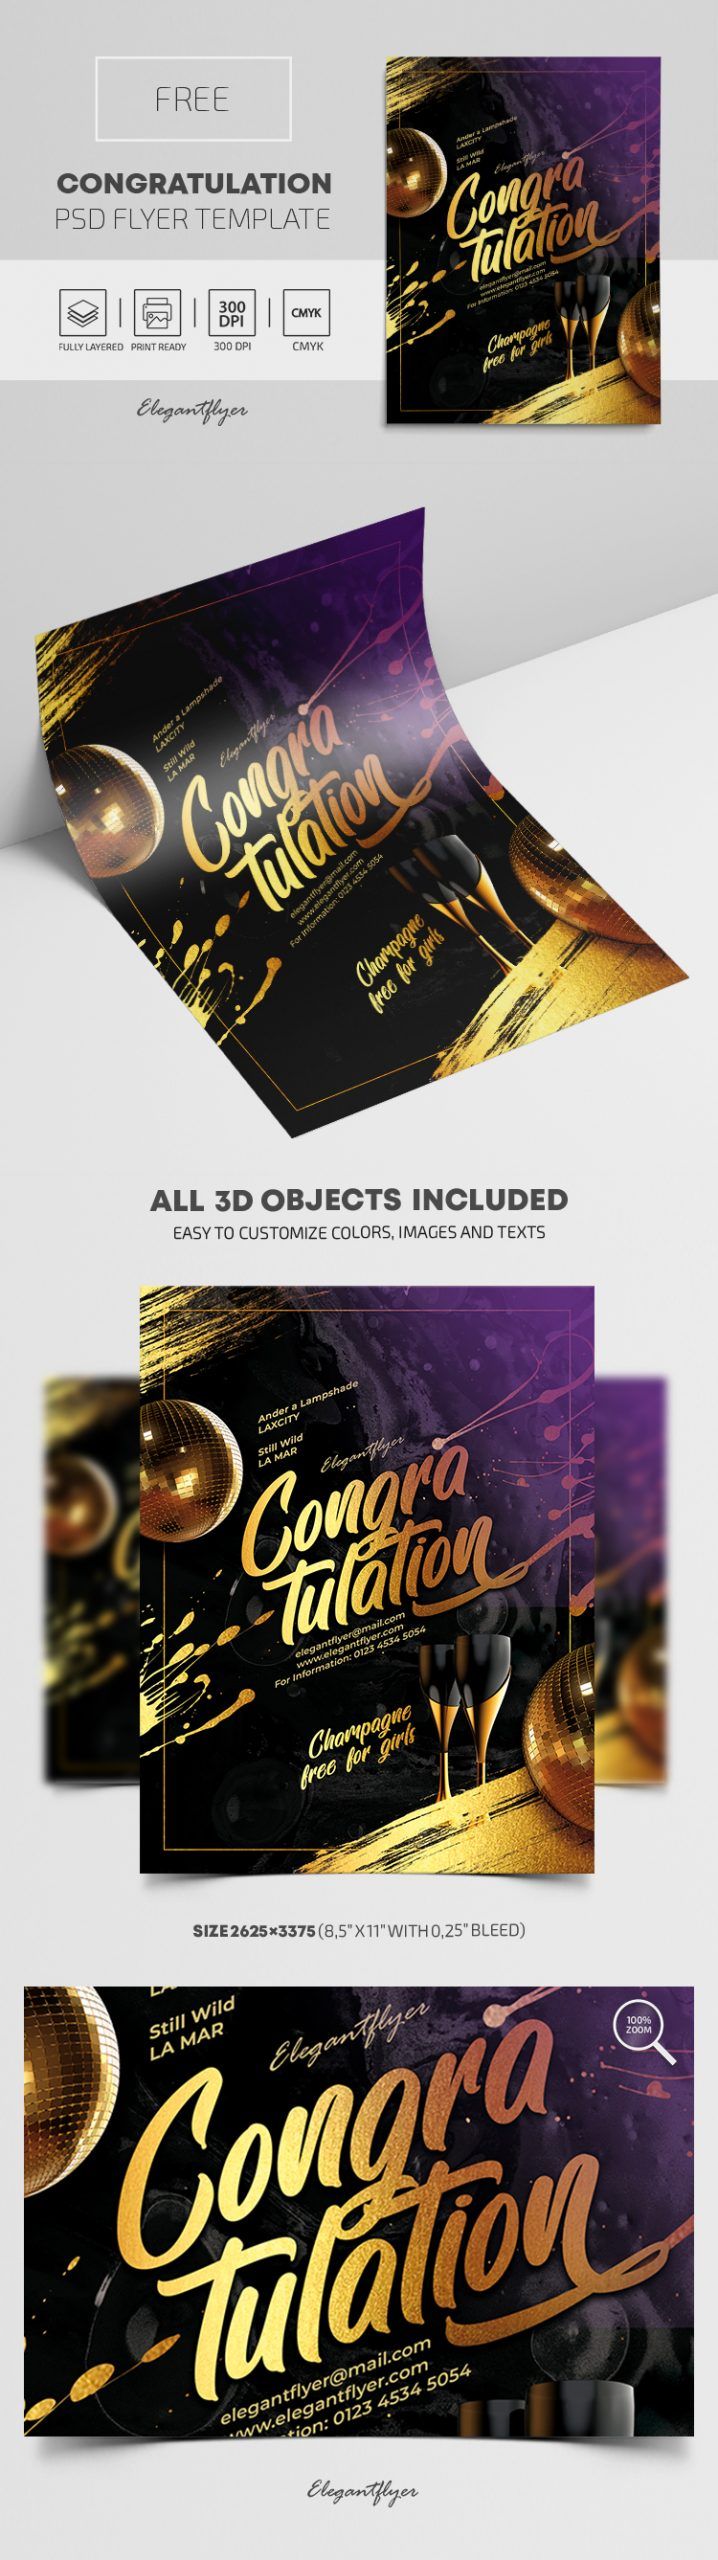 Congratulation – Free PSD Flyer